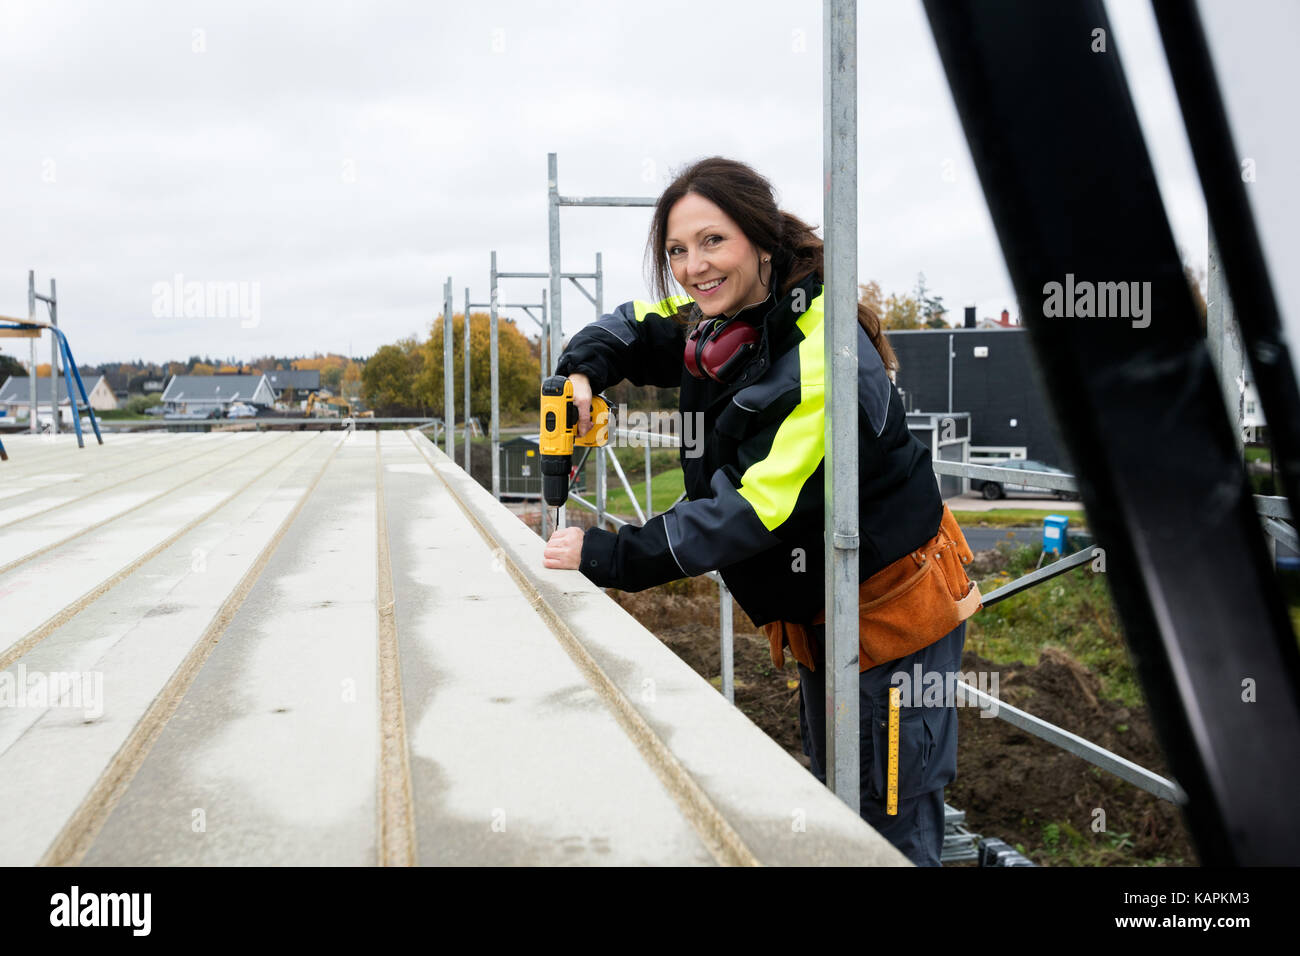 Female Carpenter Drilling Roof At Construction Site - Stock Image